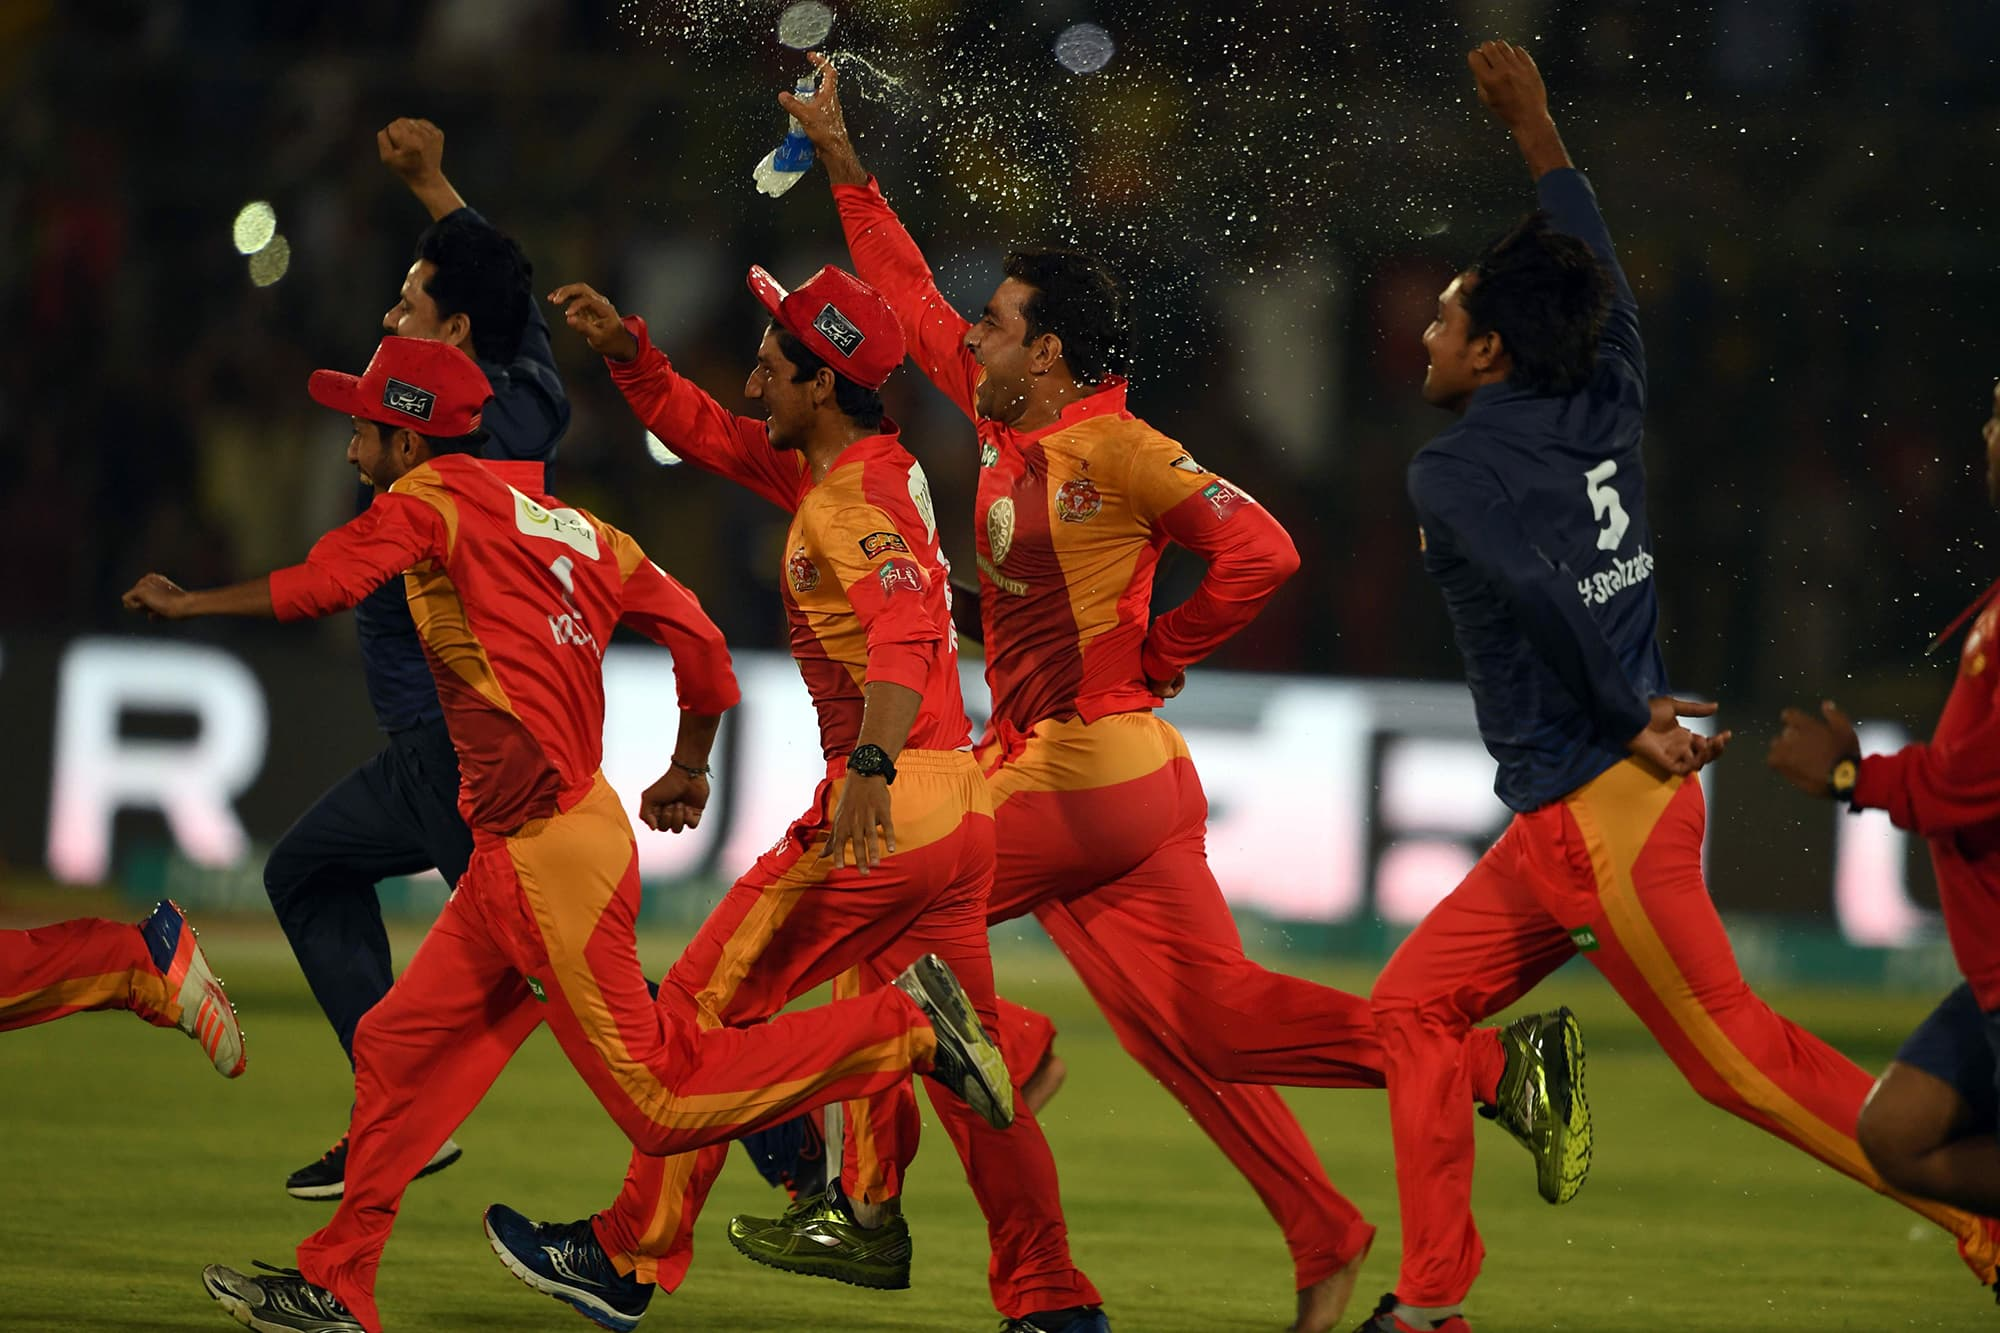 Cricket players of Islamabad United celebrates their victory at the end of the Pakistan Super League final match between Peshawar Zalmi and Islamabad United at the National Cricket Stadium in Karachi on March 25, 2018.  / AFP PHOTO / ASIF HASSAN — AFP or licensors